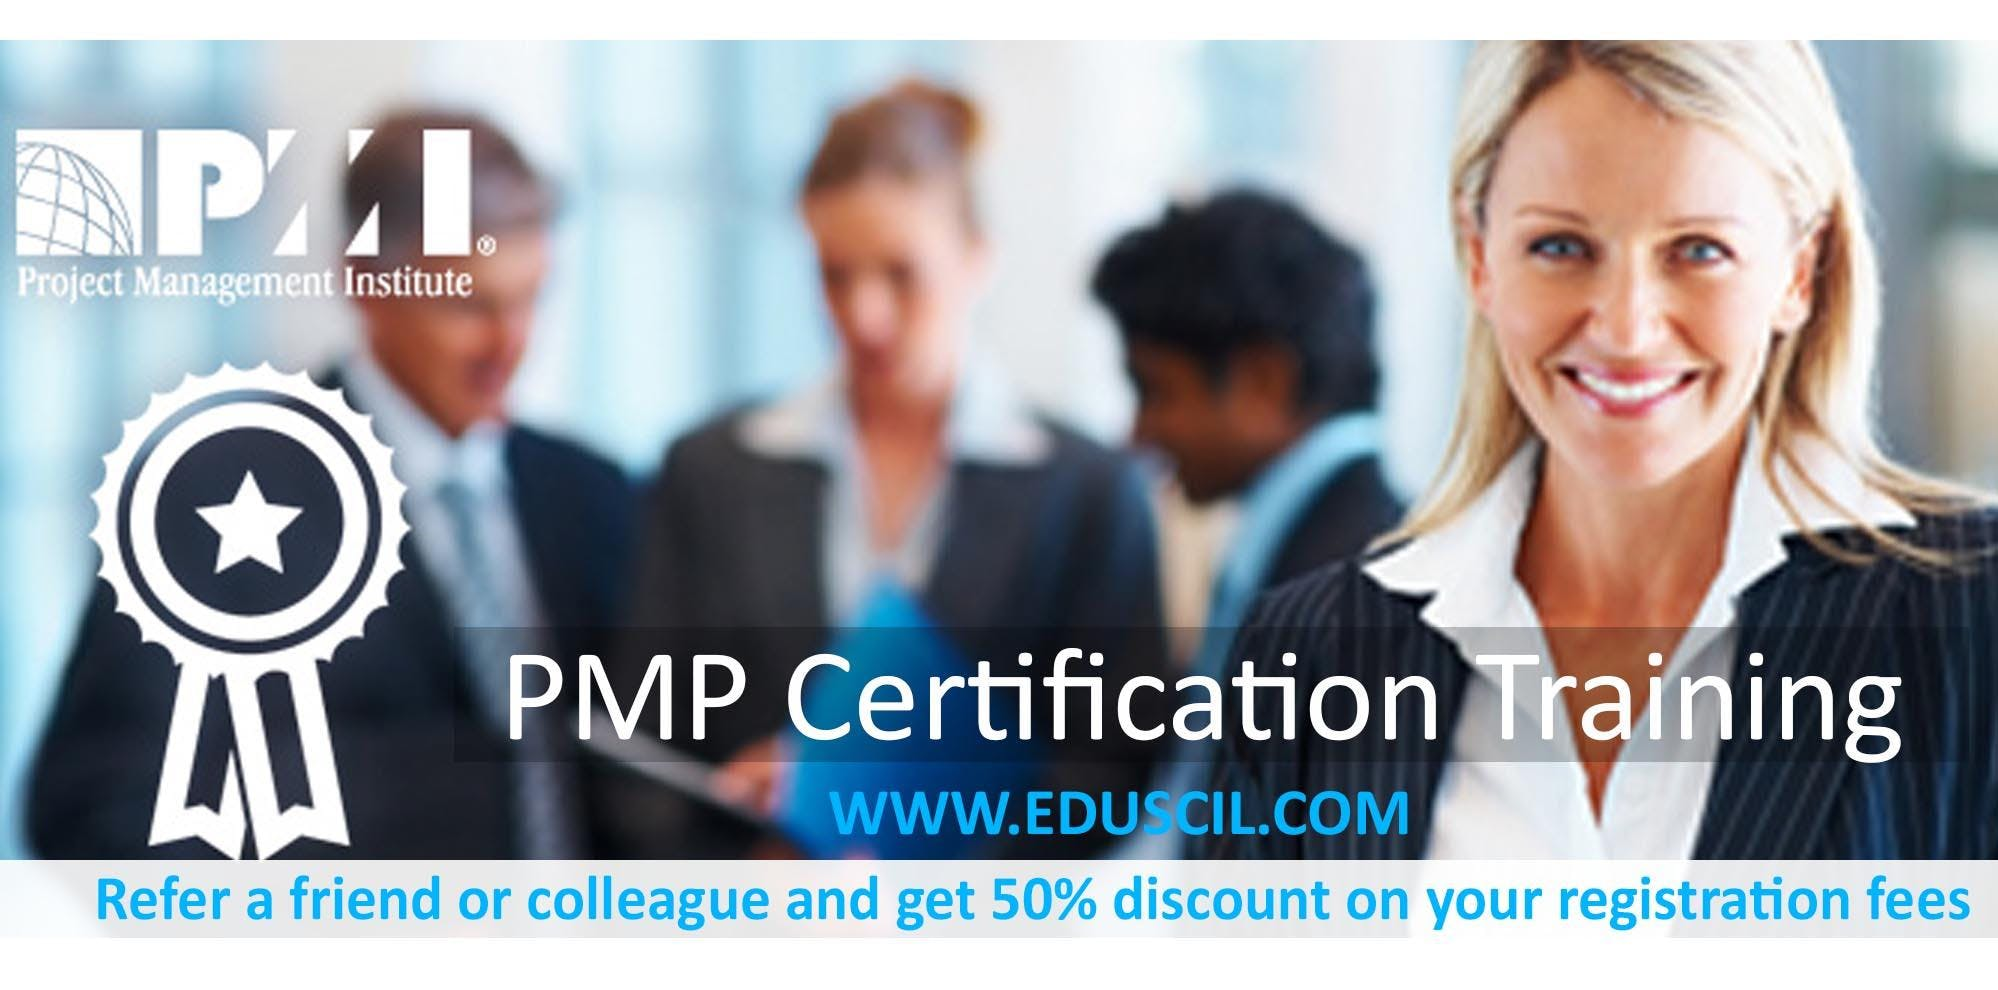 PMP Classroom Training in Baltimore MD-USA  Eduscil